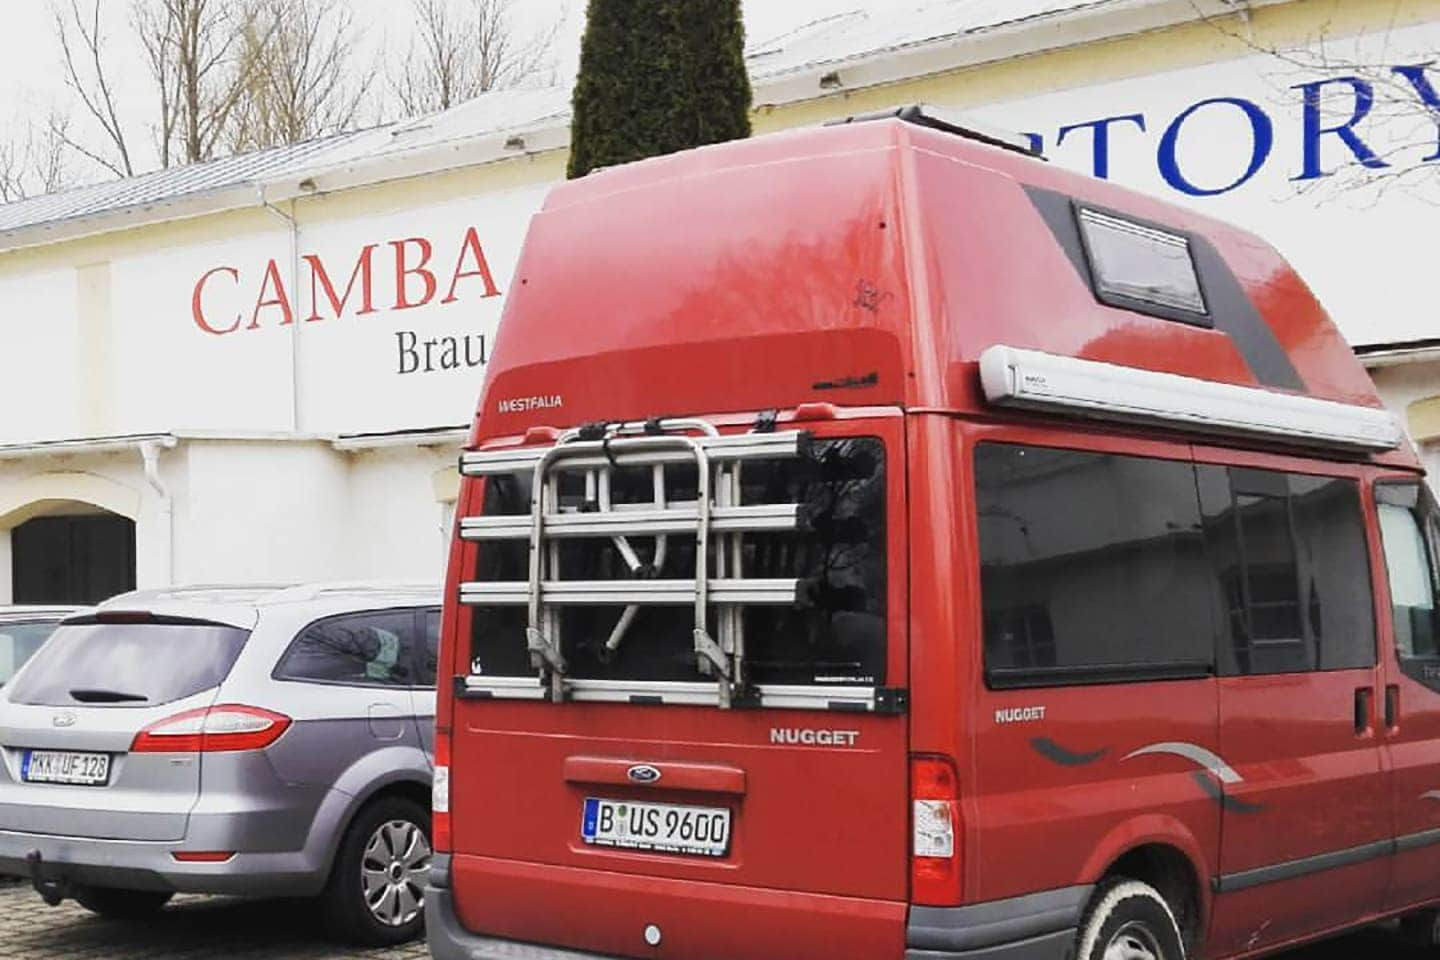 Georg's camper van at the CAMBA Old Factory during a FUERST WIACEK brew day